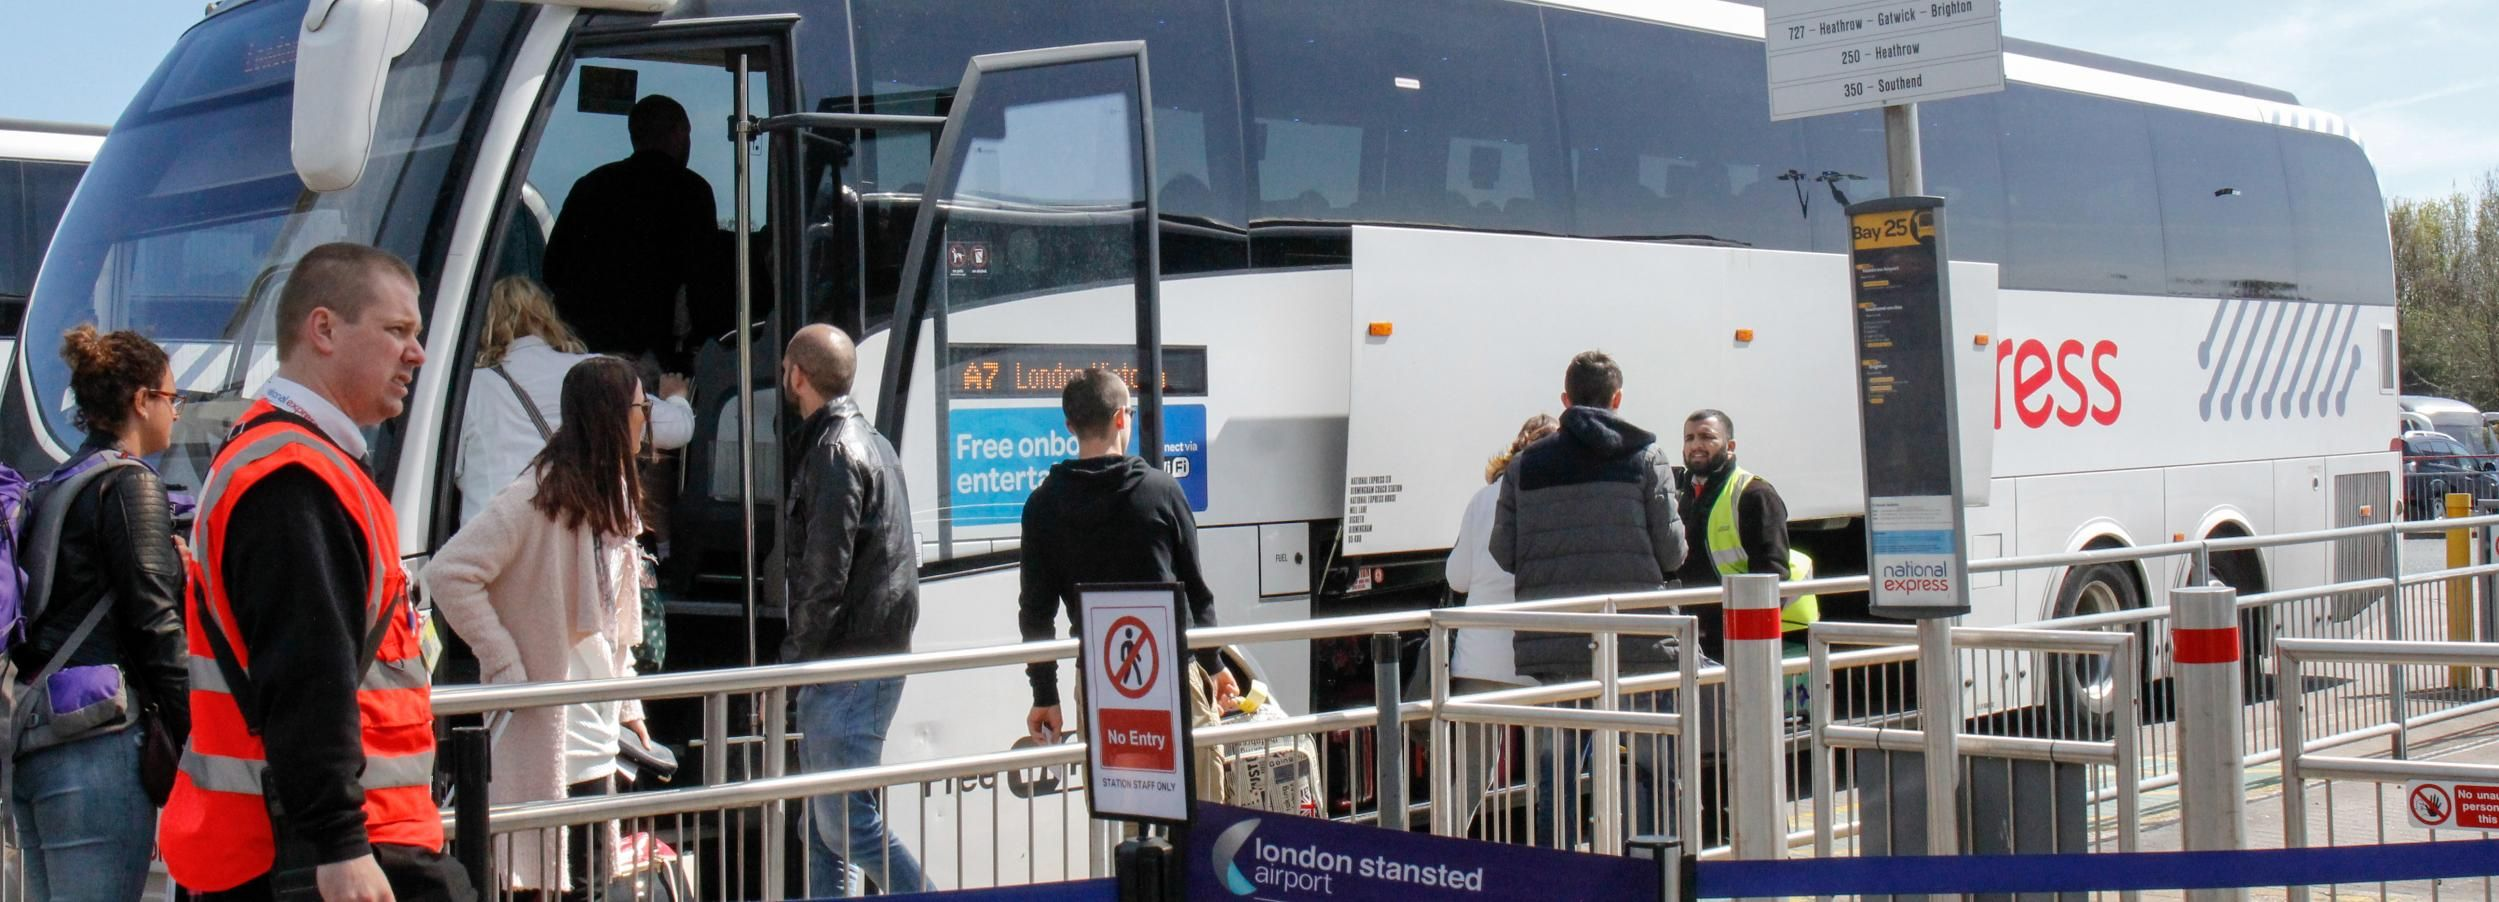 Bustransfer: Flughafen Stansted - Stadtzentrum London